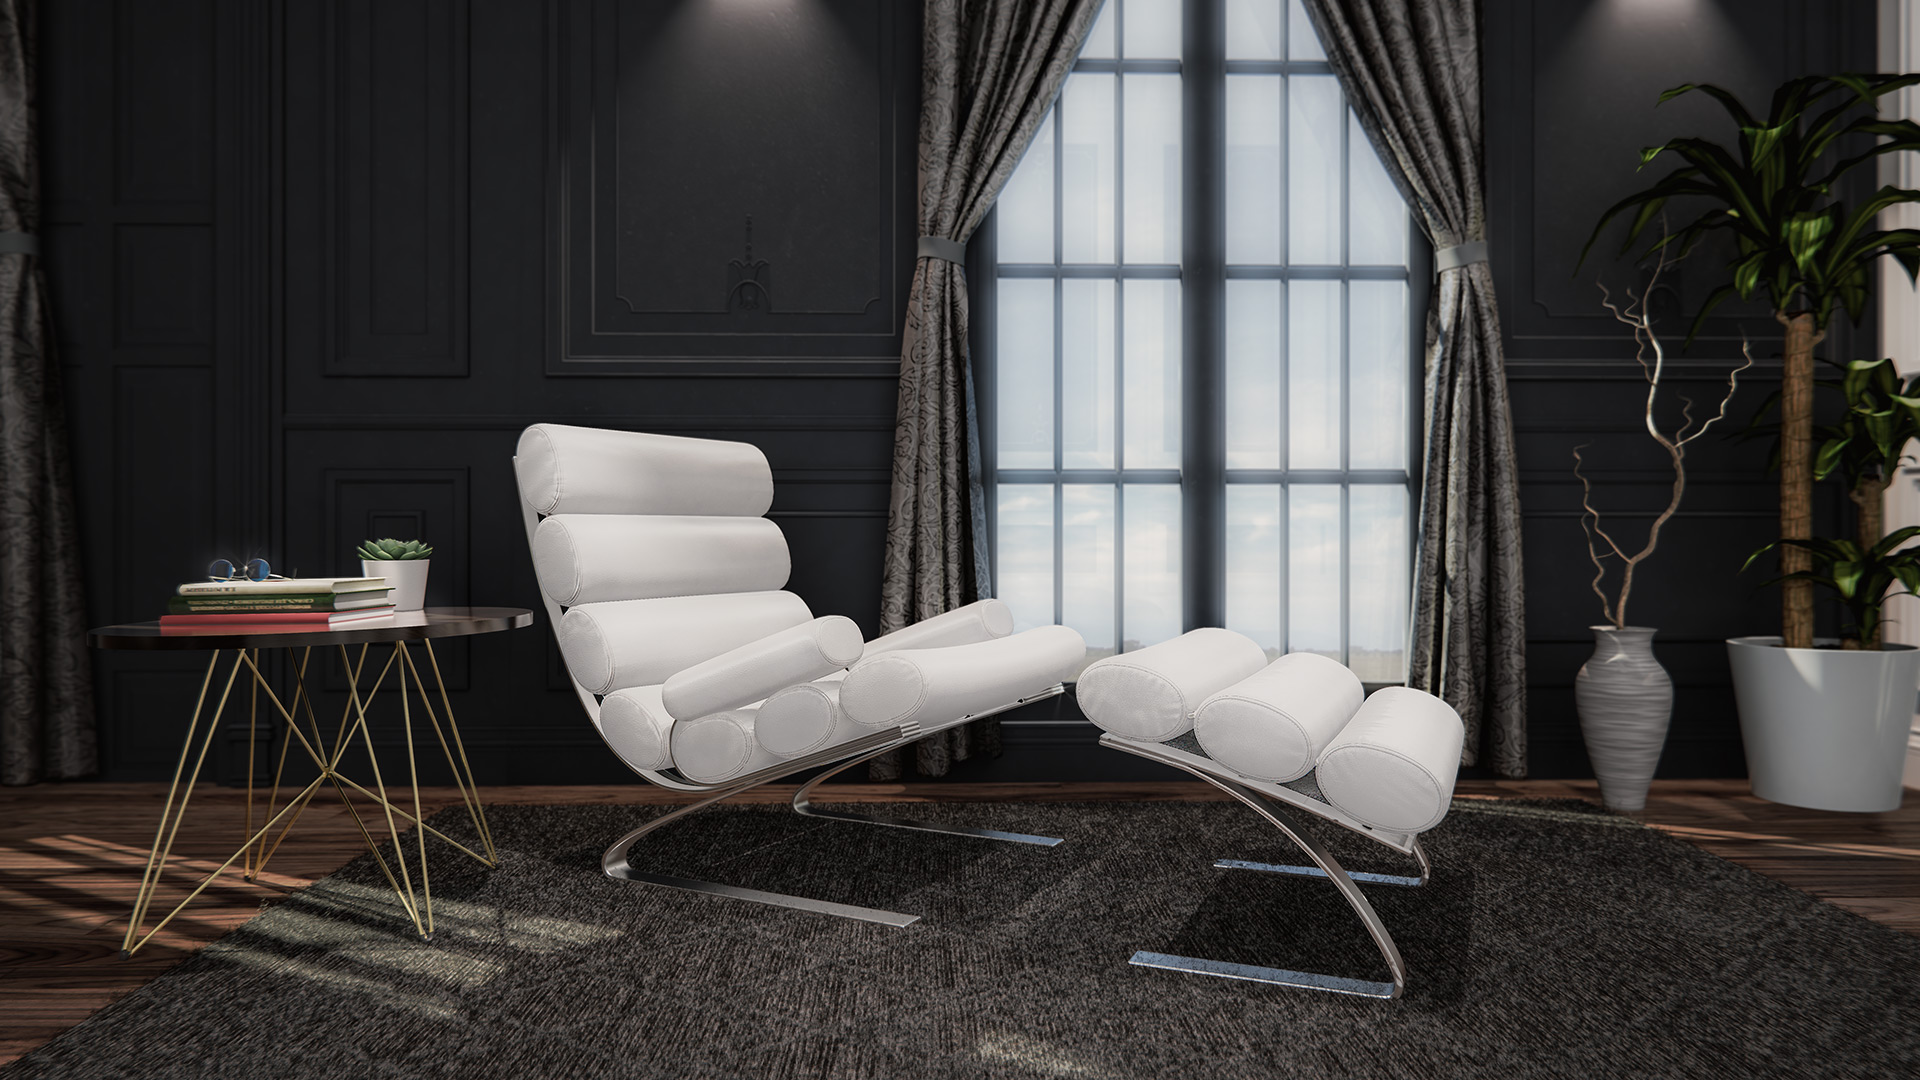 Furniture Lifestyle 3D Rendering